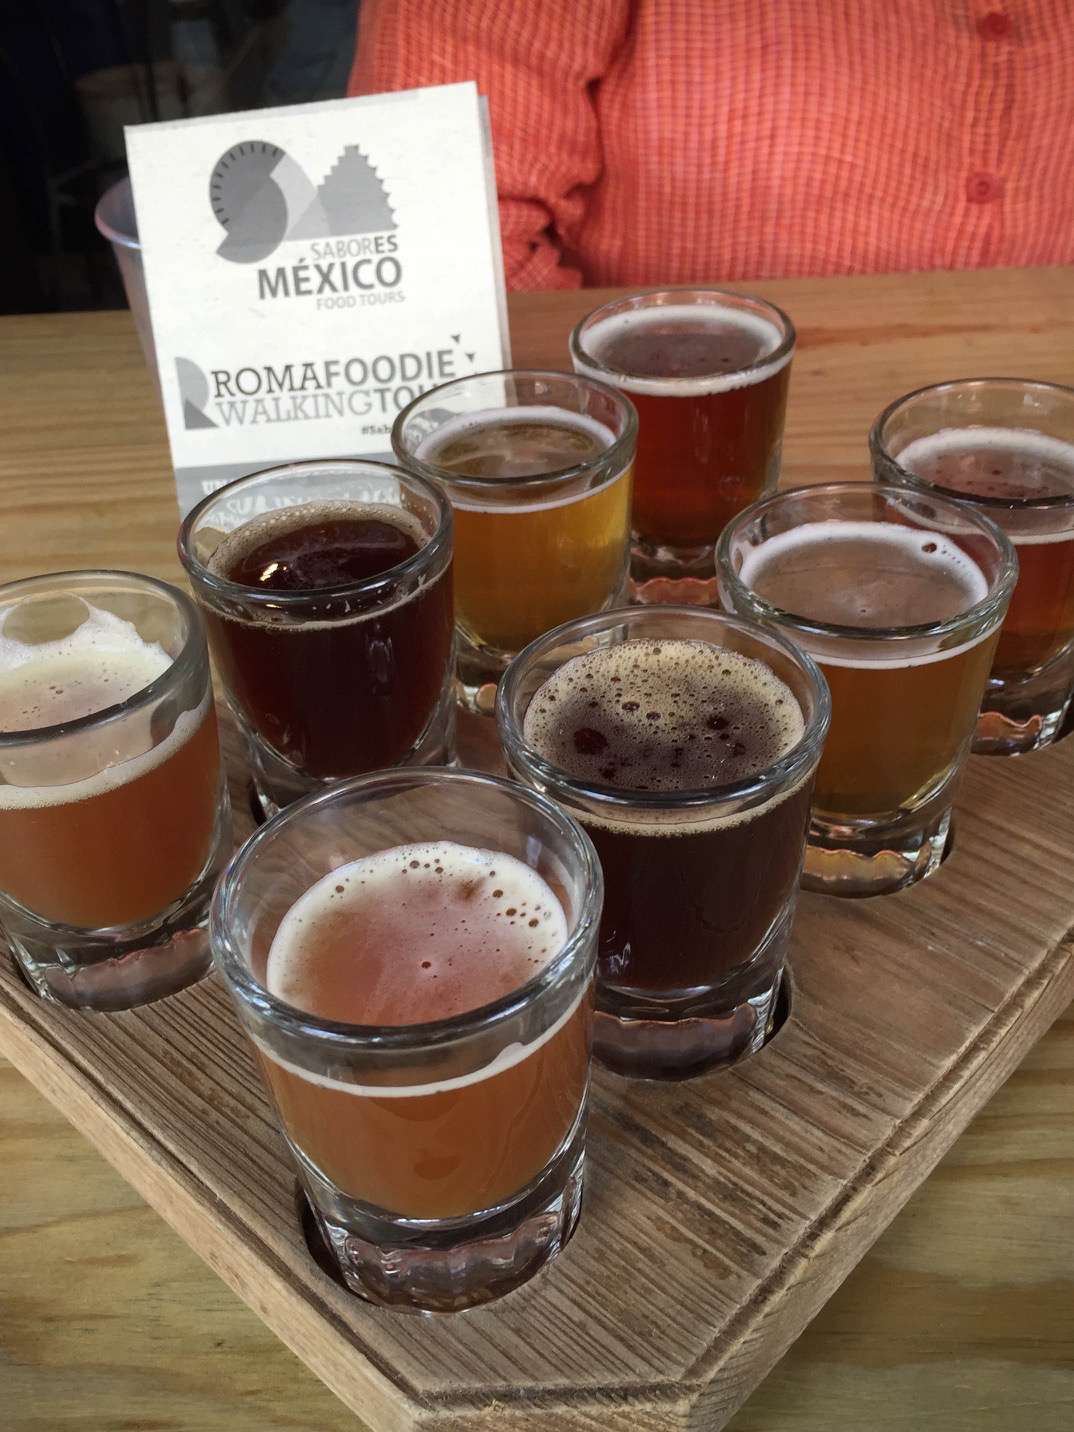 More known for tequila and mezcal, Mexico and Mexico City are home to some increasingly-appreciated craft beers, like this sampling during a walking tour of Barrio Roma.